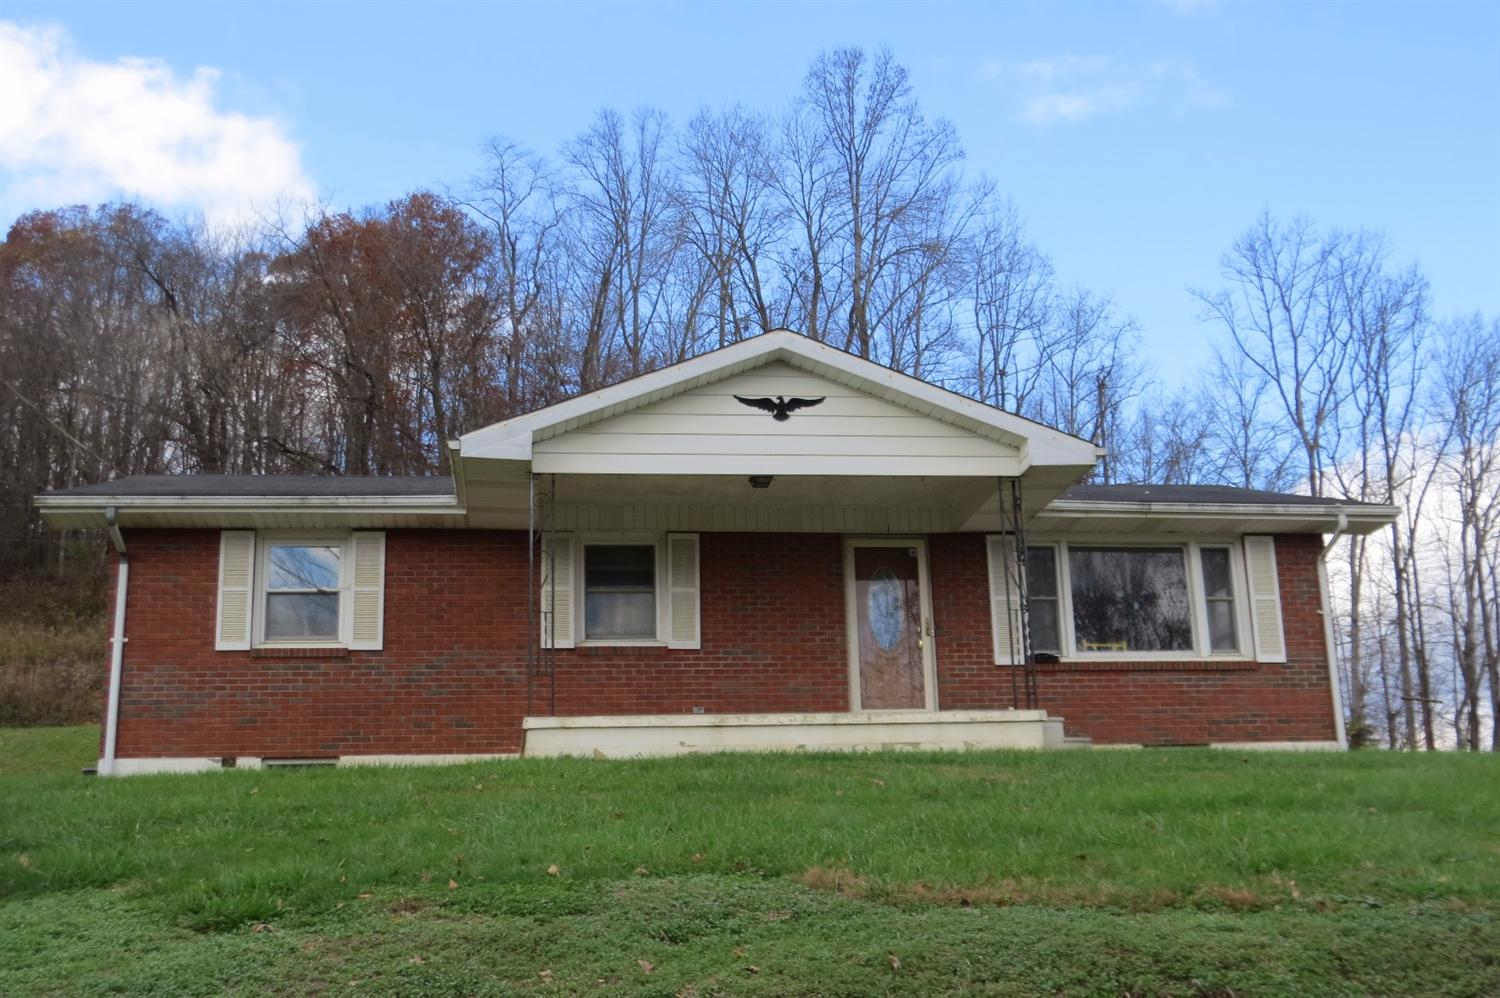 288%20McIntosh%20Rd,%20Booneville,%20KY%2041314